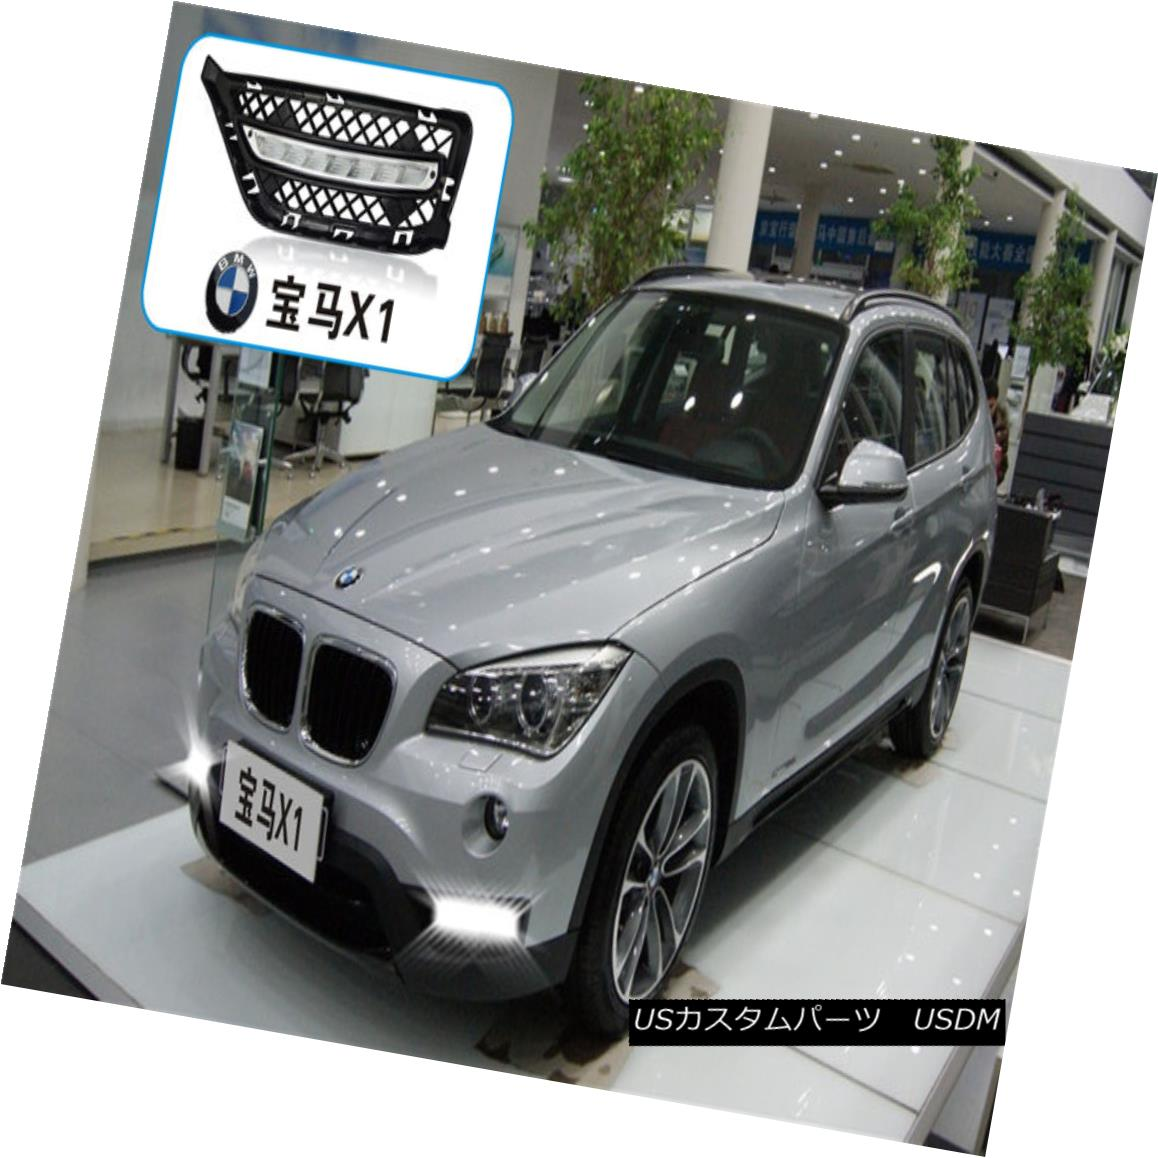 エアロパーツ DRL LED Driving Daylight Daytime Running Lights/Lamp For BMW X1 2013-2015 BMW X1 2013-2015用DRL LED昼間昼間走行灯/ランプの駆動